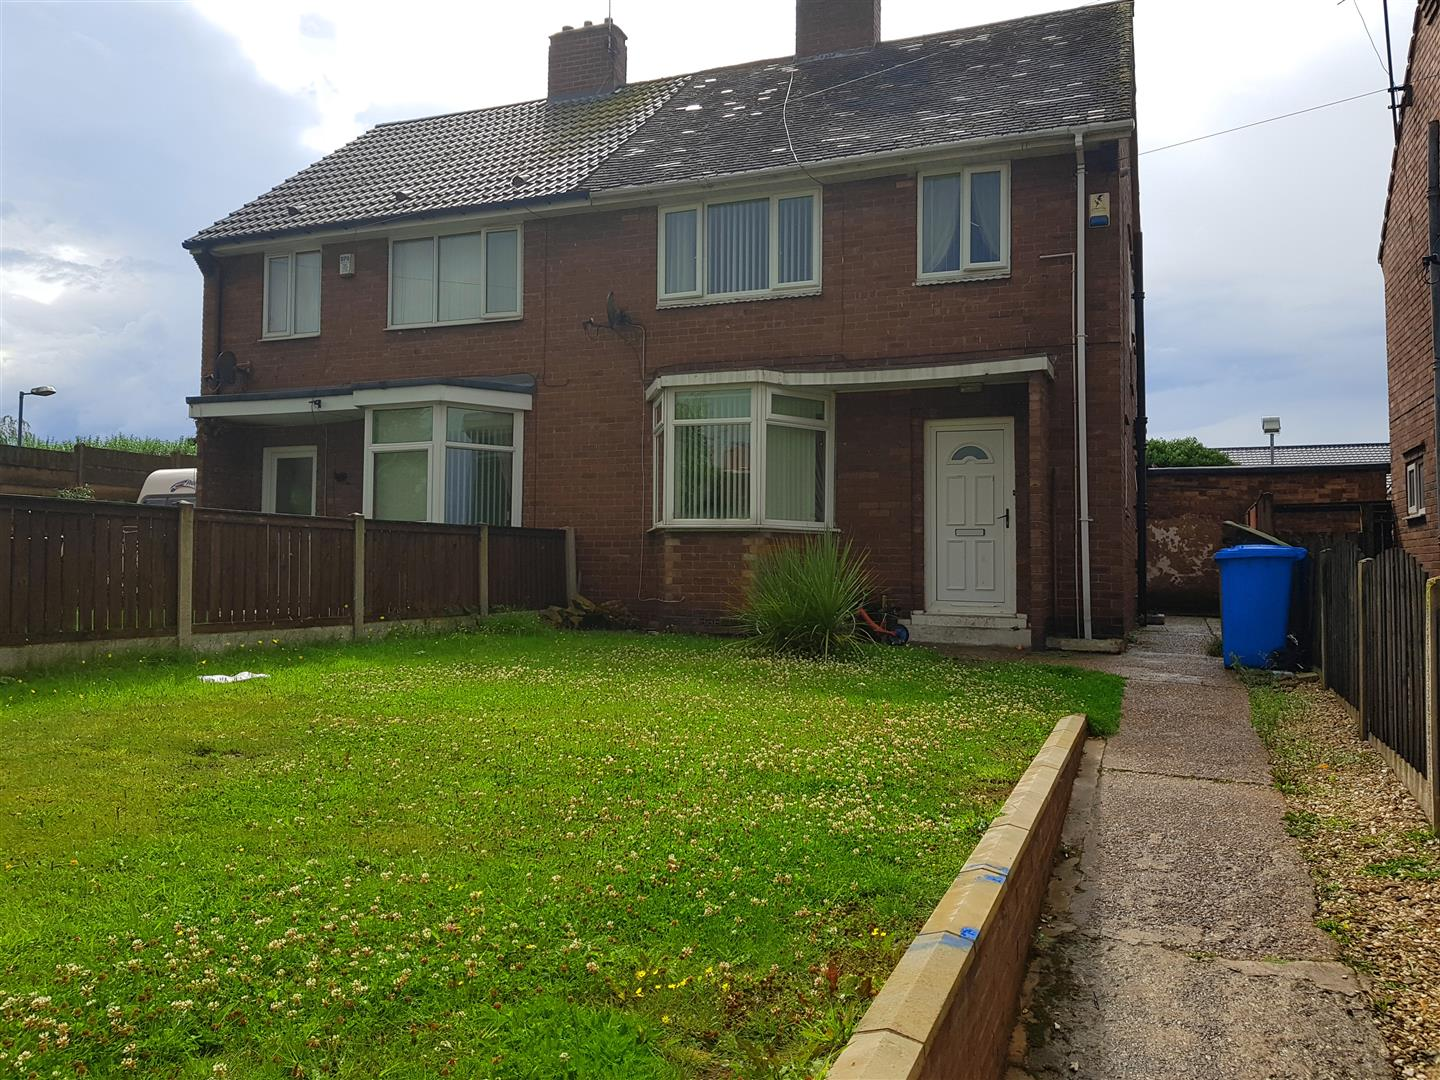 3 Bedrooms Semi Detached House for sale in Shrewsbury Road, Worksop